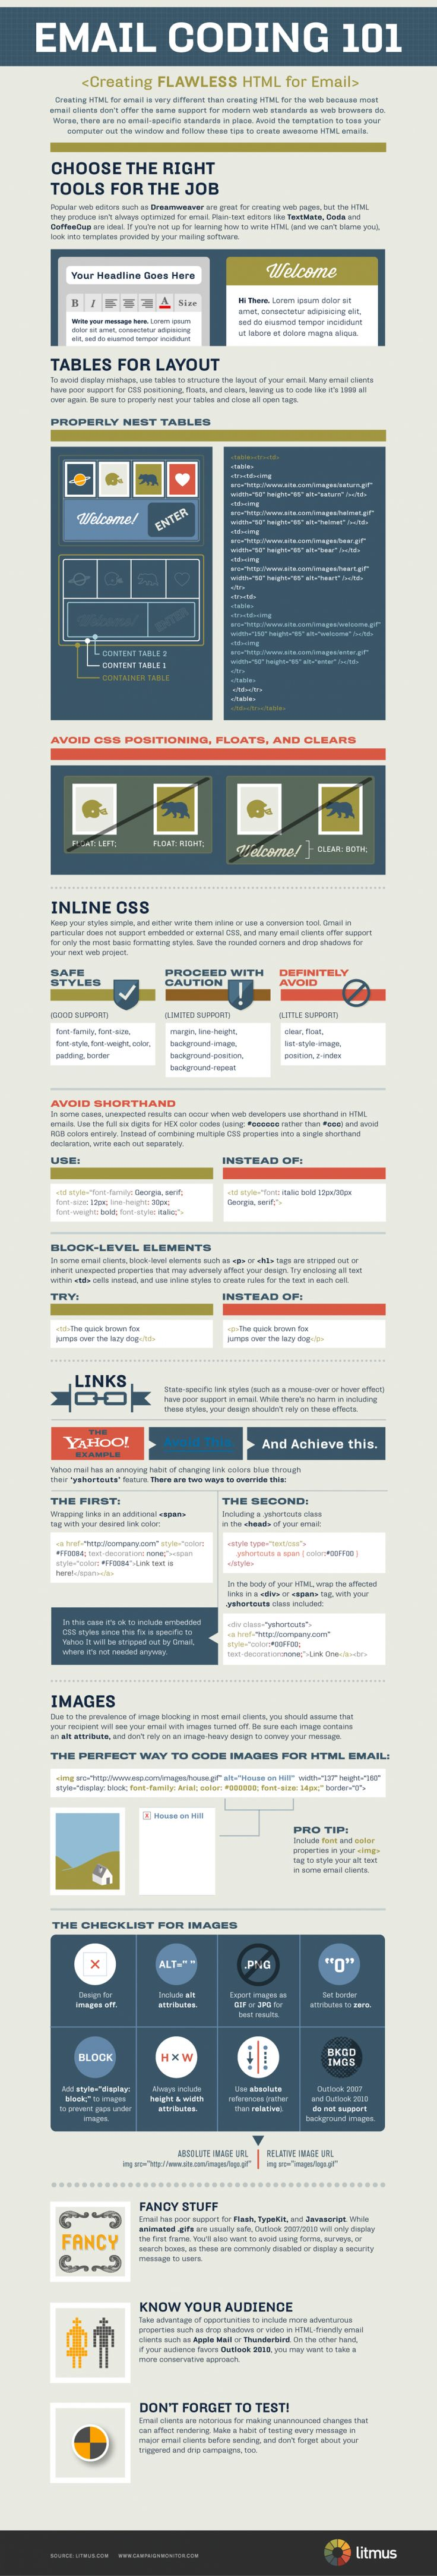 HTML Email Code 101: A Guide For Email Marketing [ #Infographic ] #html #design